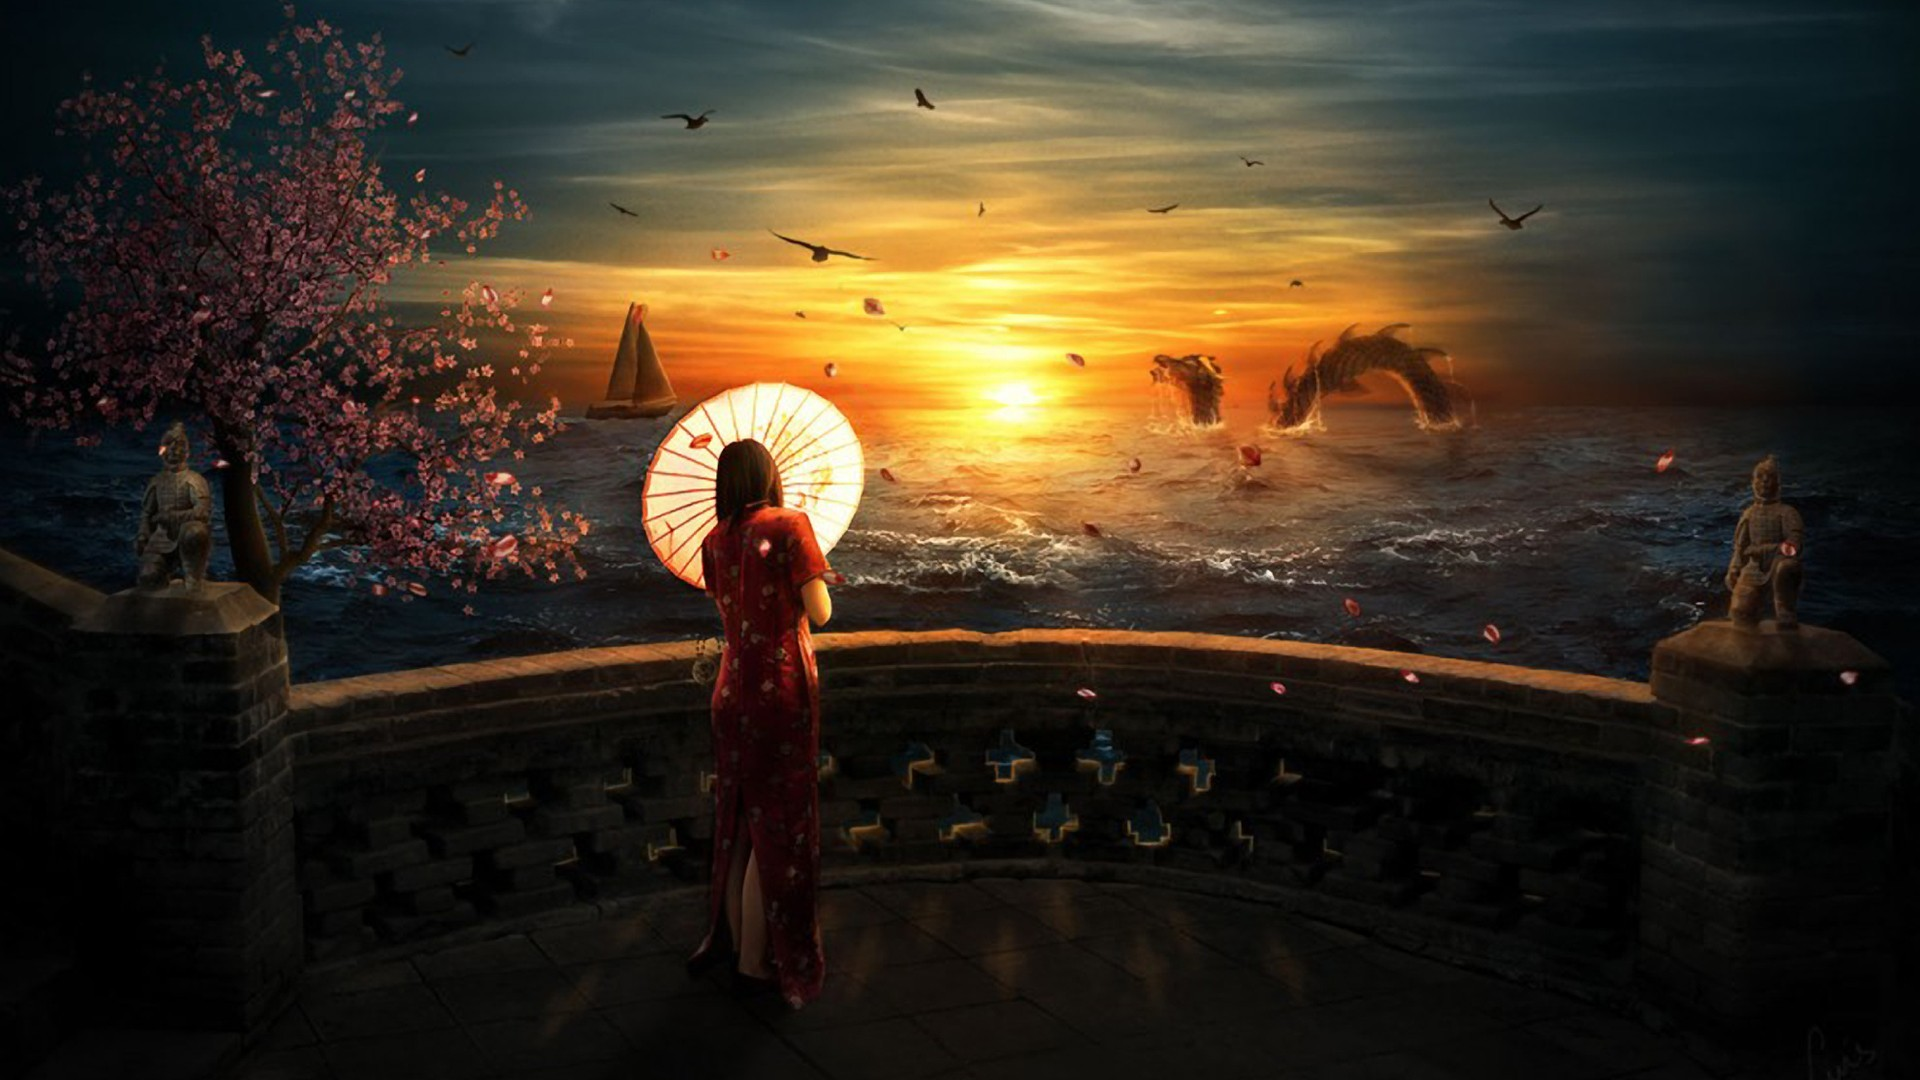 woman sunset fantasy ocean HD Wallpaper